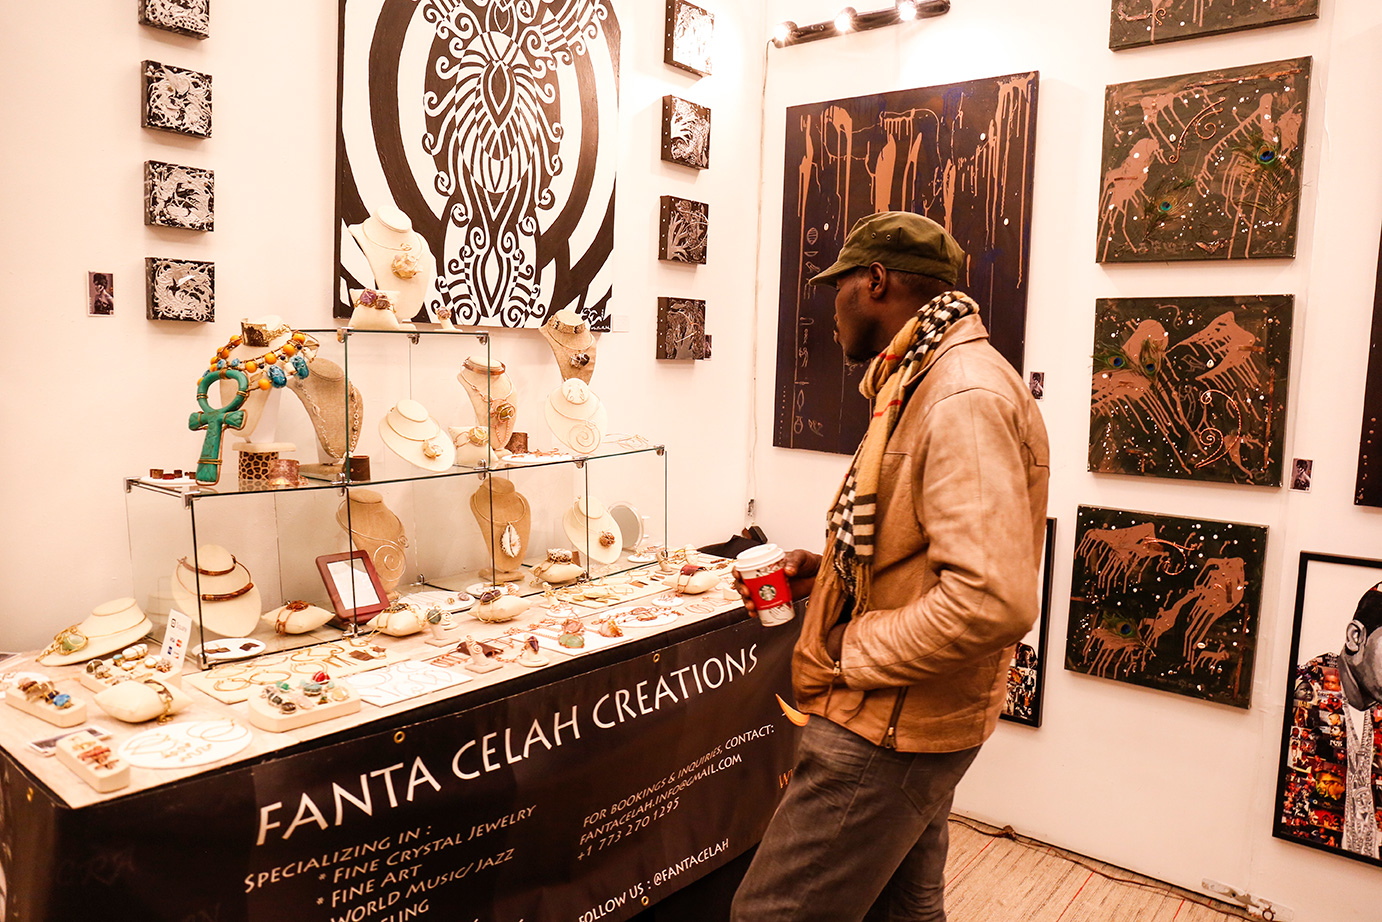 Fanta Celah Creations Exhibit